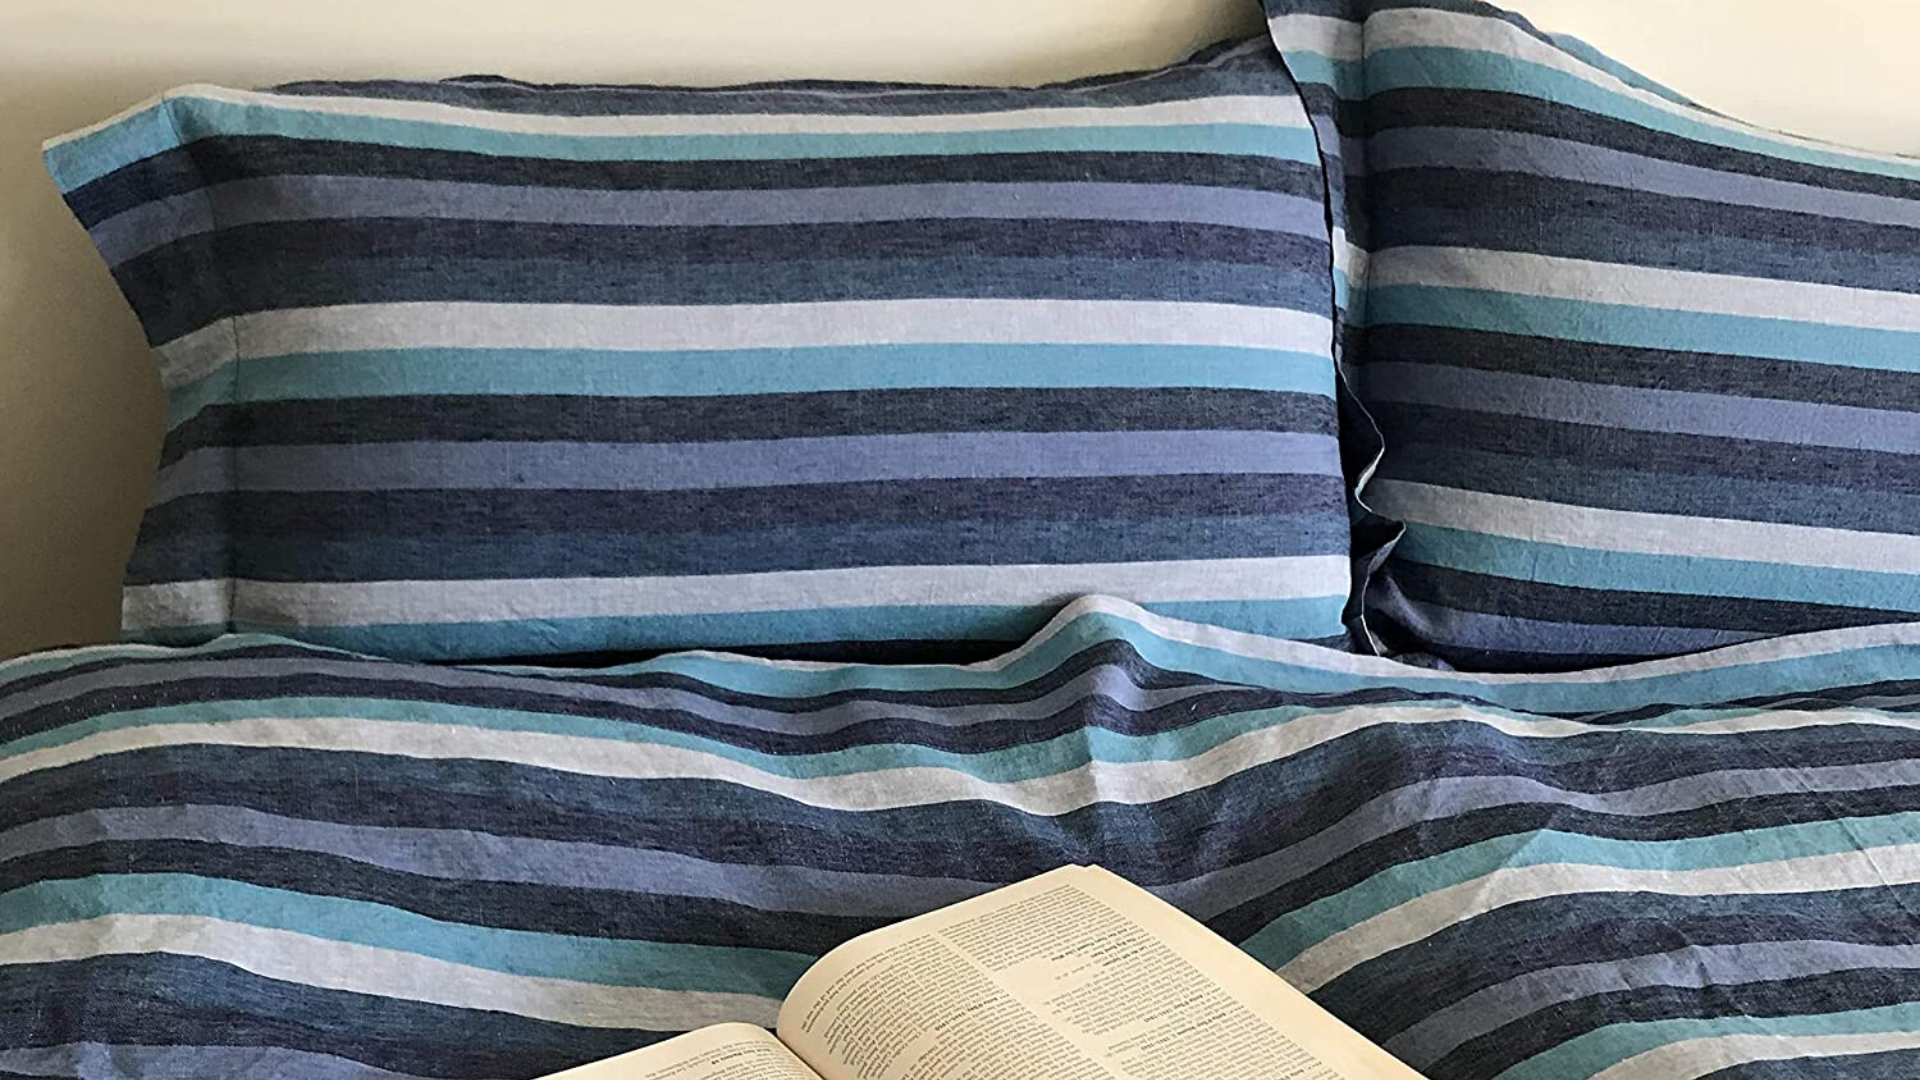 8 Cooling Sheets to Keep You From Sweating This Summer